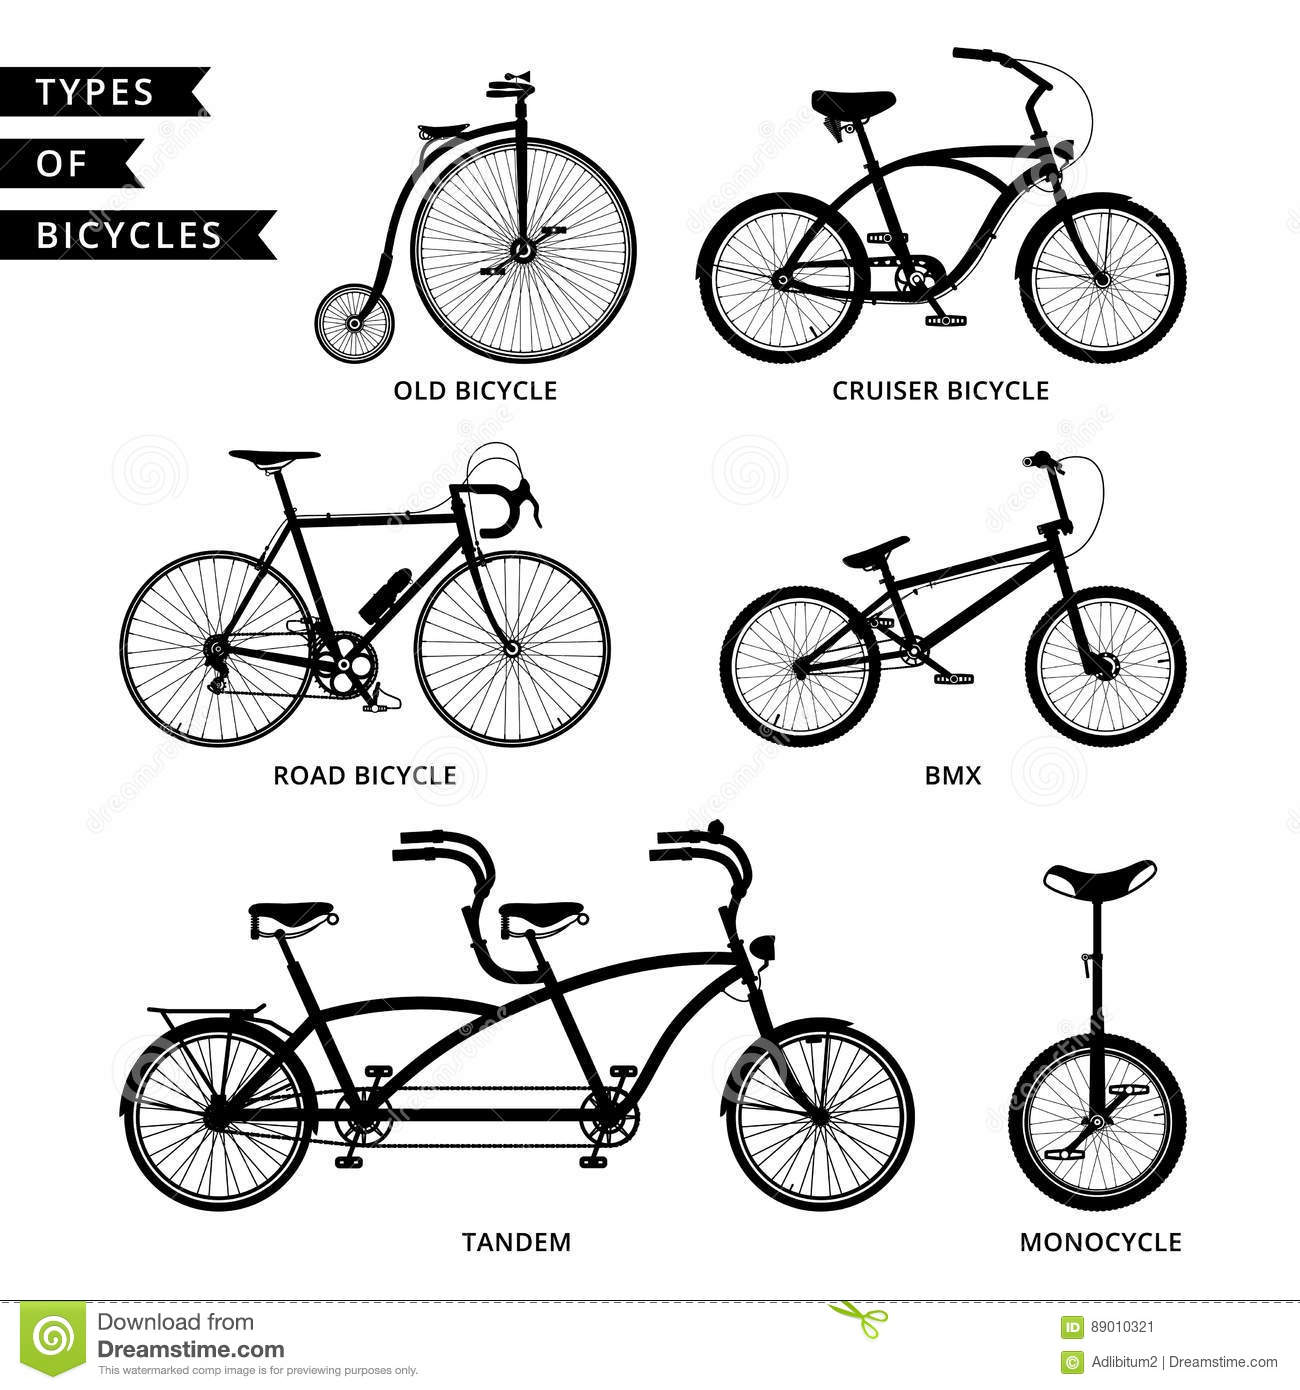 Types Of Bicycles >> Types Of Bicycles Silhouette Stock Illustration Illustration Of